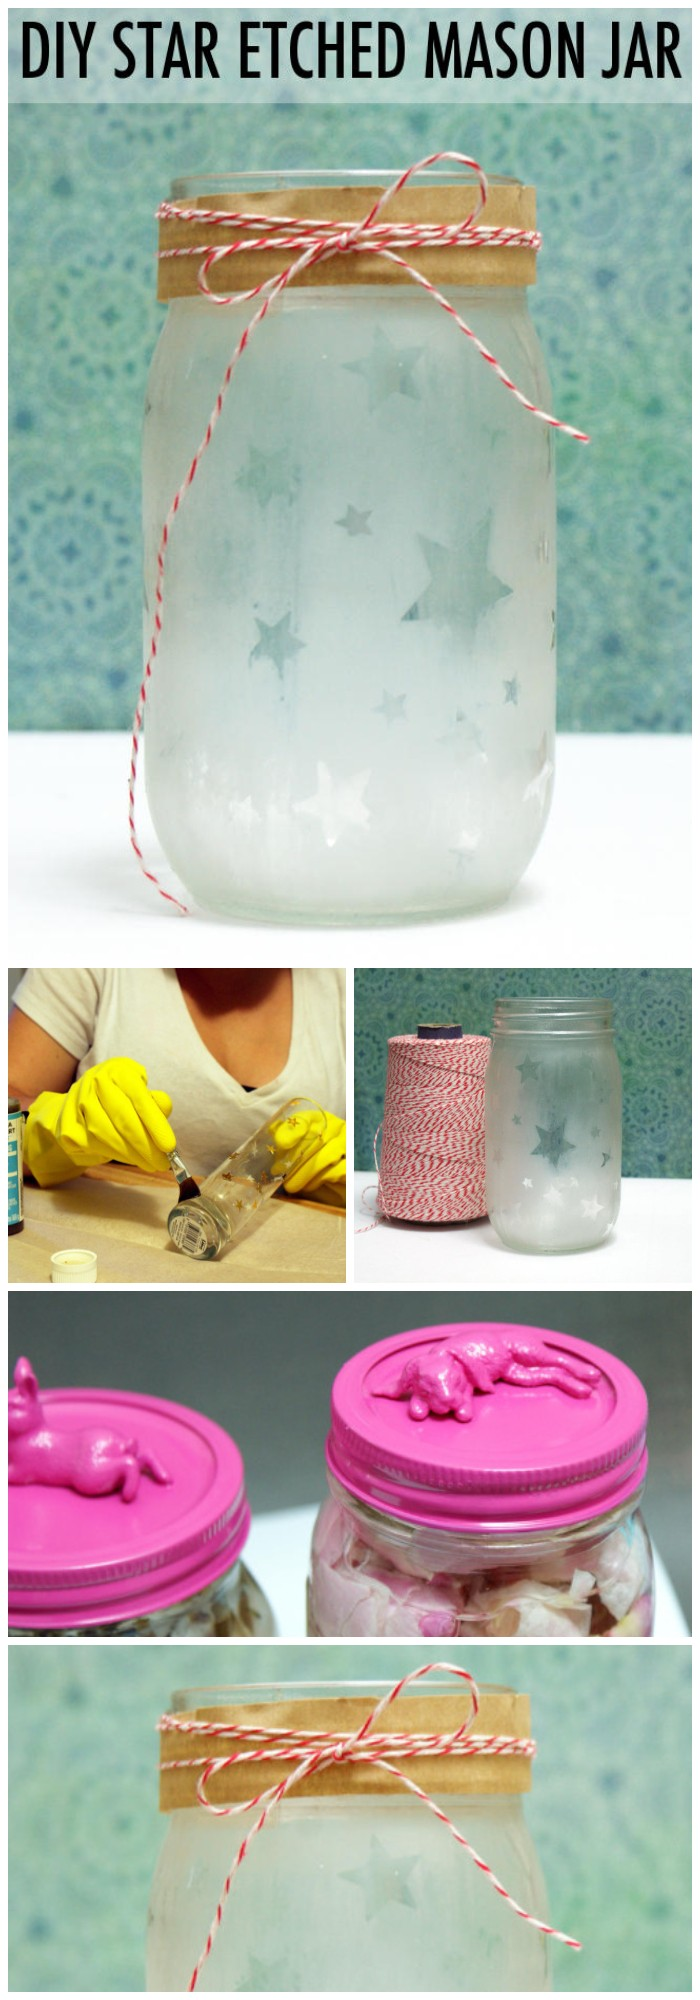 DIY Star Etched Mason Jar